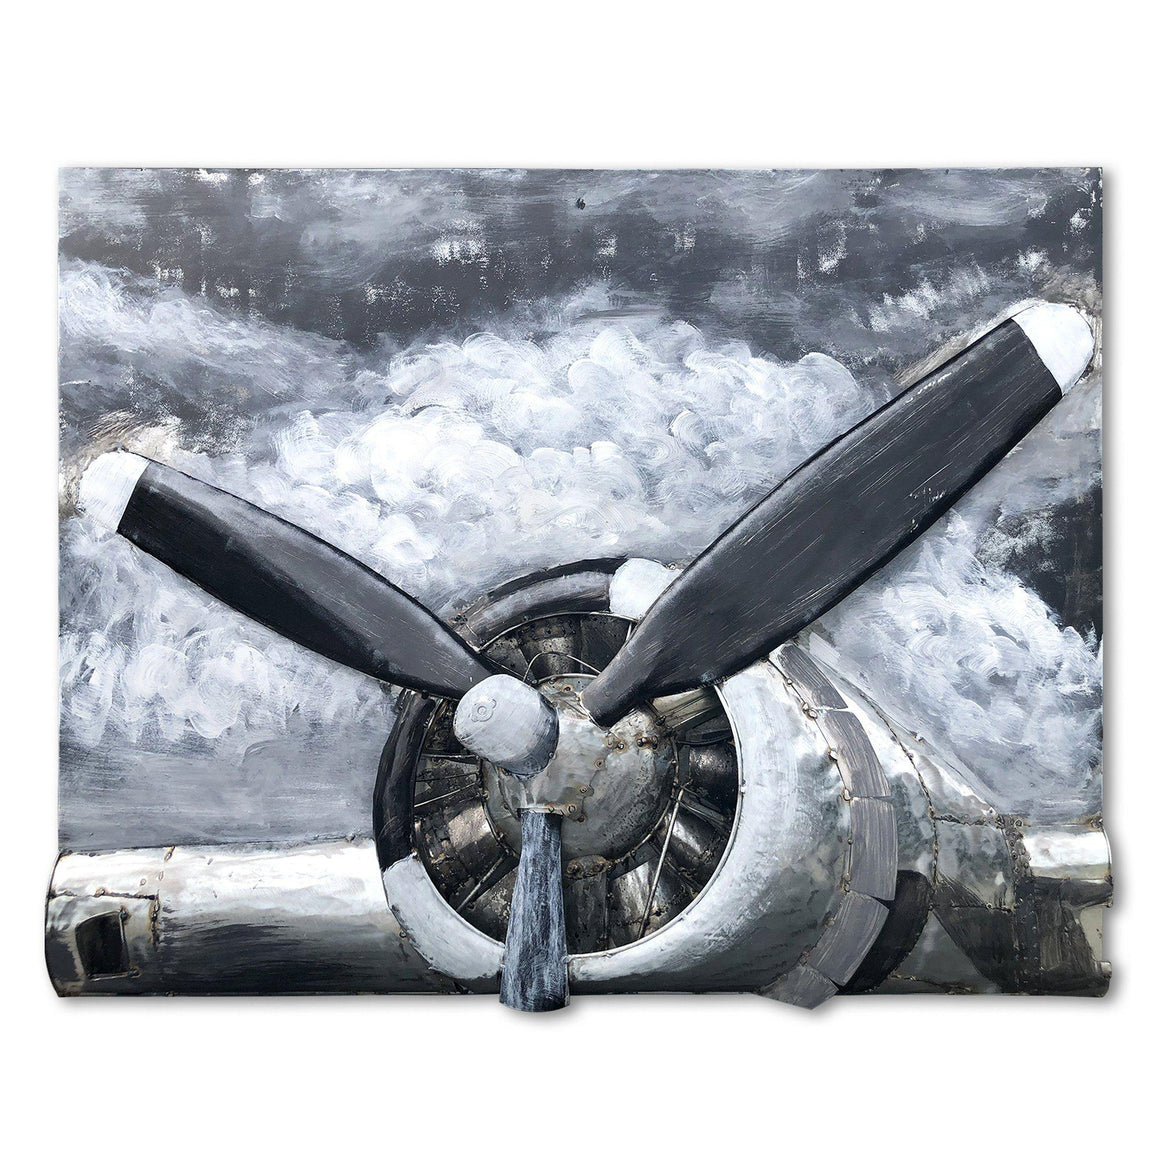 B-17 Engine 3D Metal Wall Art - WWII Bomber Aircraft Propeller-Rustic Deco Incorporated